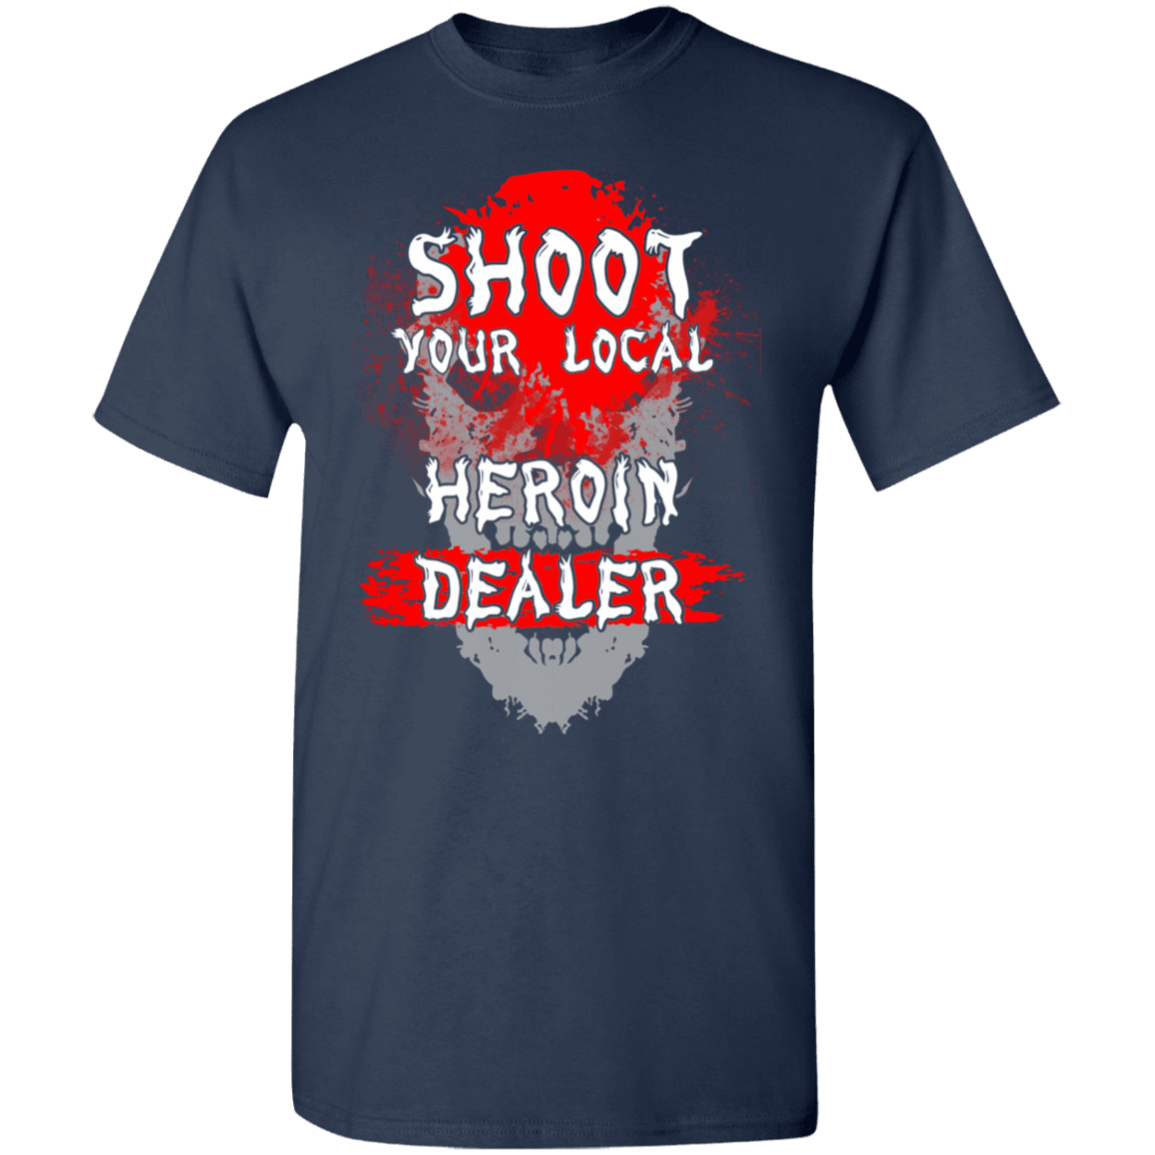 Shoot Your Local Heroin Dealer T-Shirts, Hoodies, Tank 1049-9966-80245838-48248 - Tee Ript